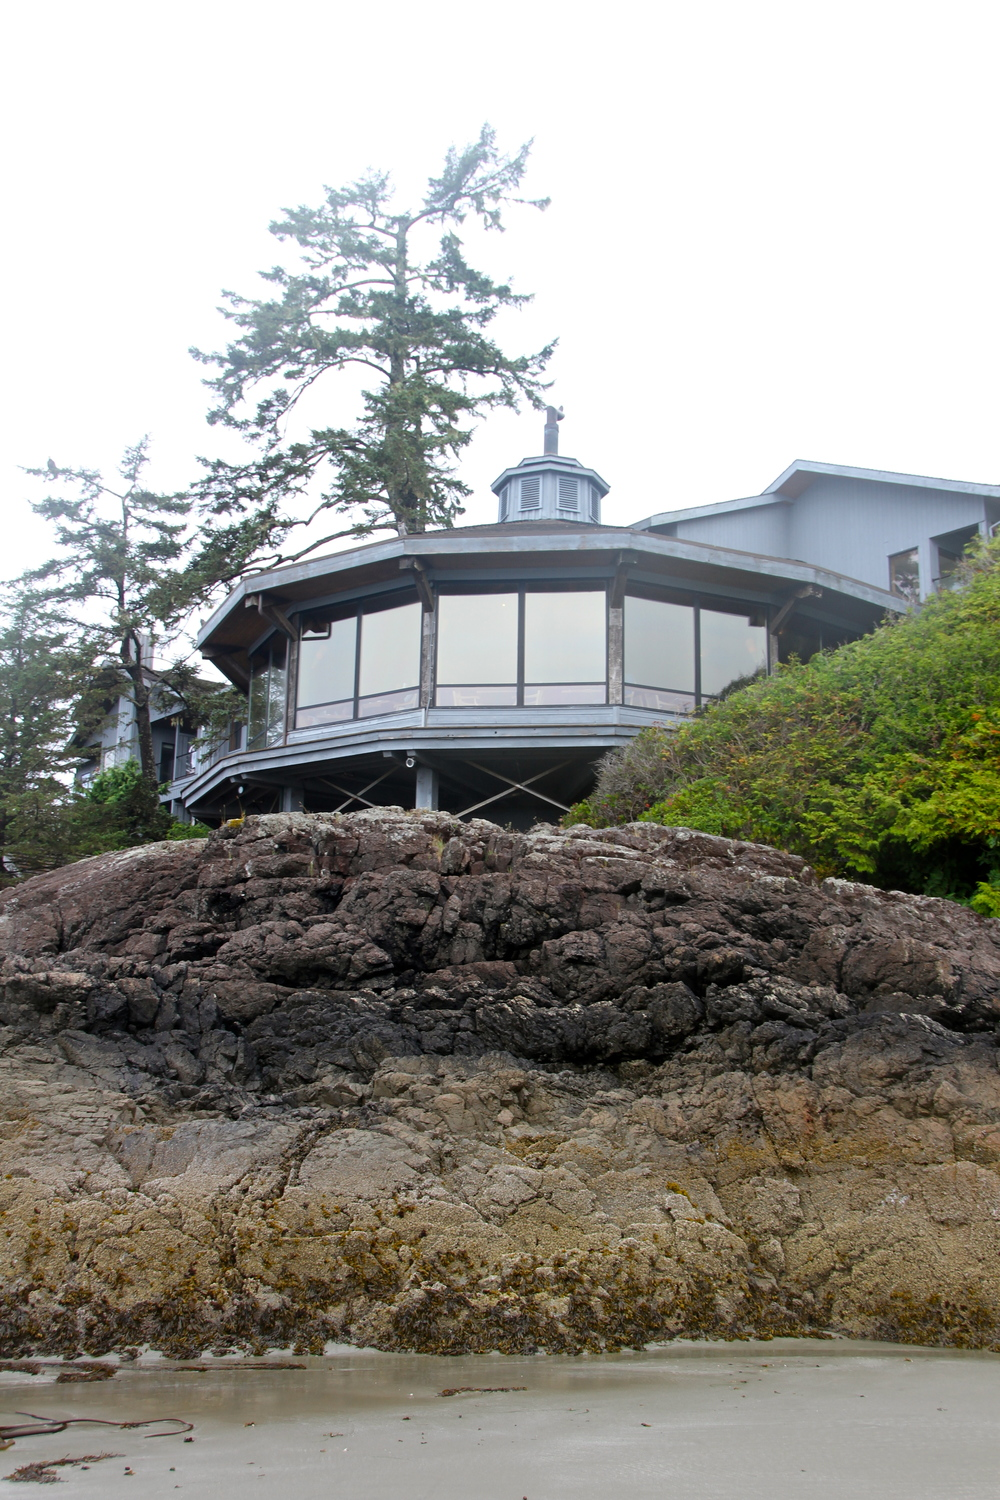 Low tide. The Wickaninnish Inn, Chesterman Beach, Tofino, BC, Canada.